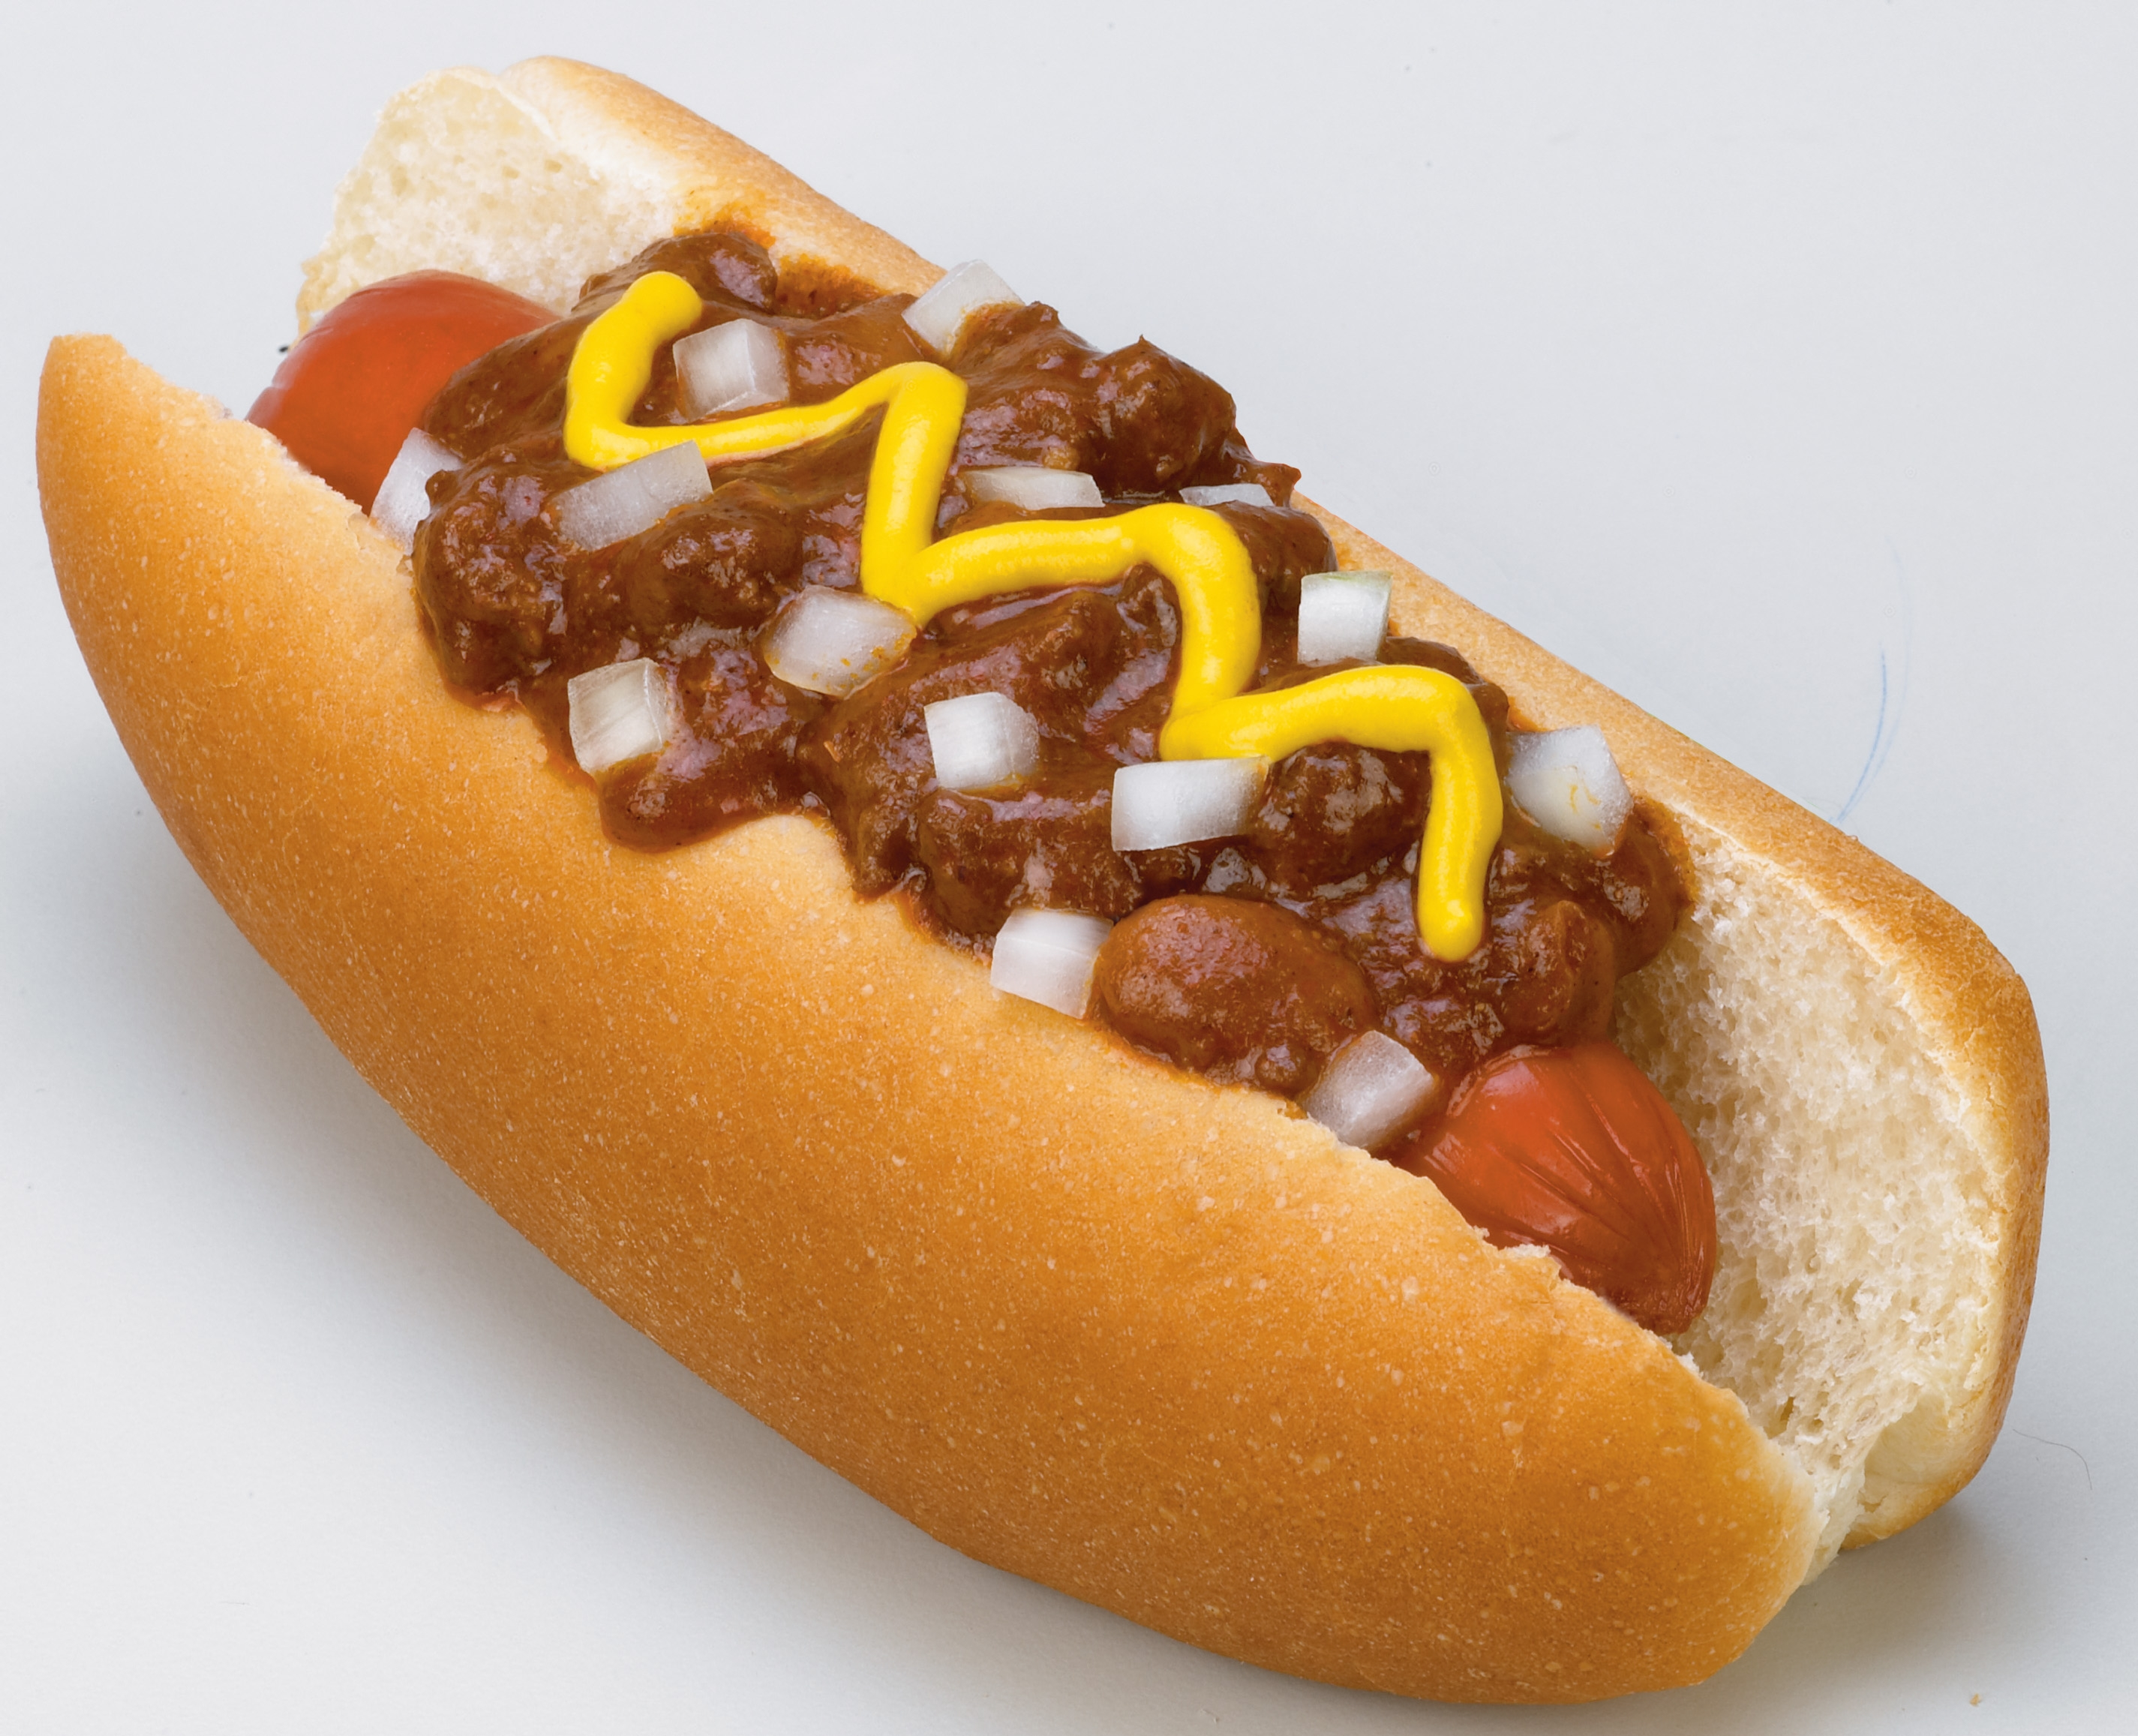 Free Cheese Dog Cliparts, Download Free Clip Art, Free Clip Art on.